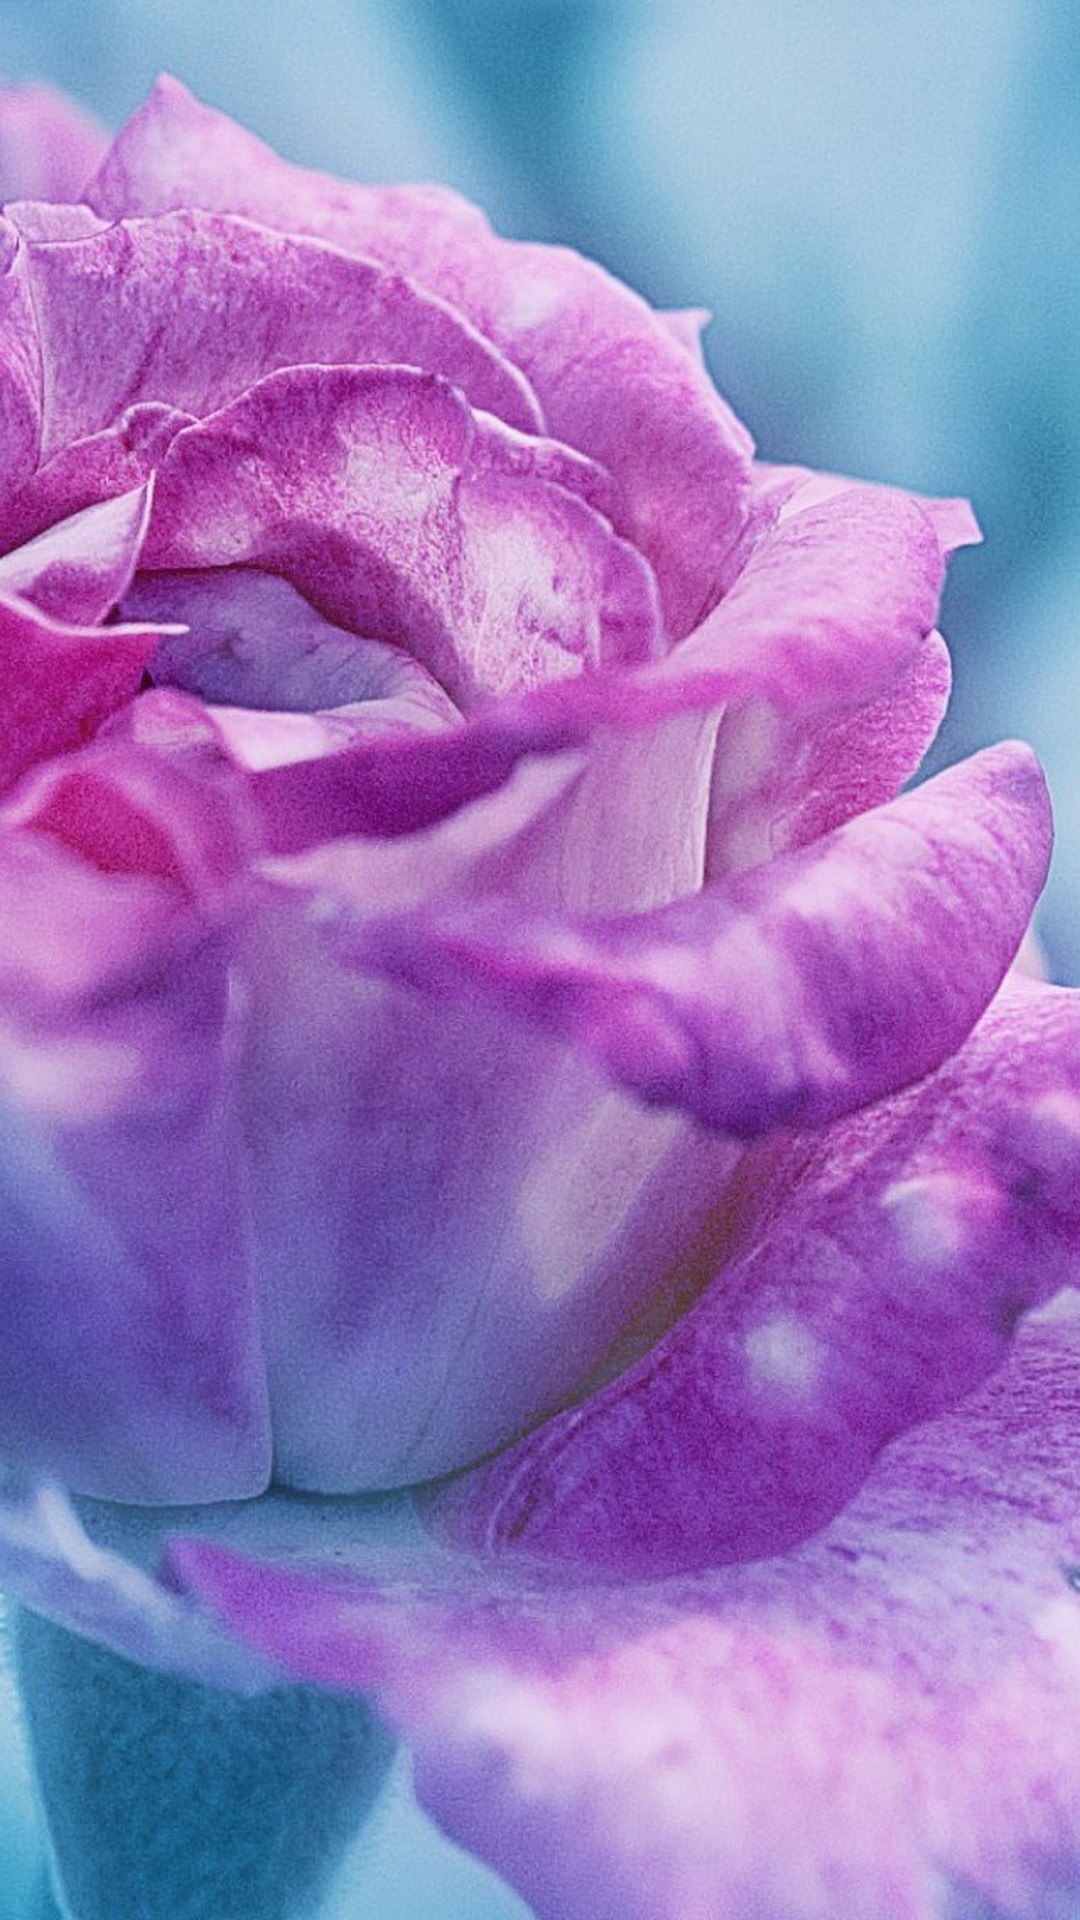 Flower-Samsung-Galaxy-S-1080%C3%971920-wallpaper-wp3405639